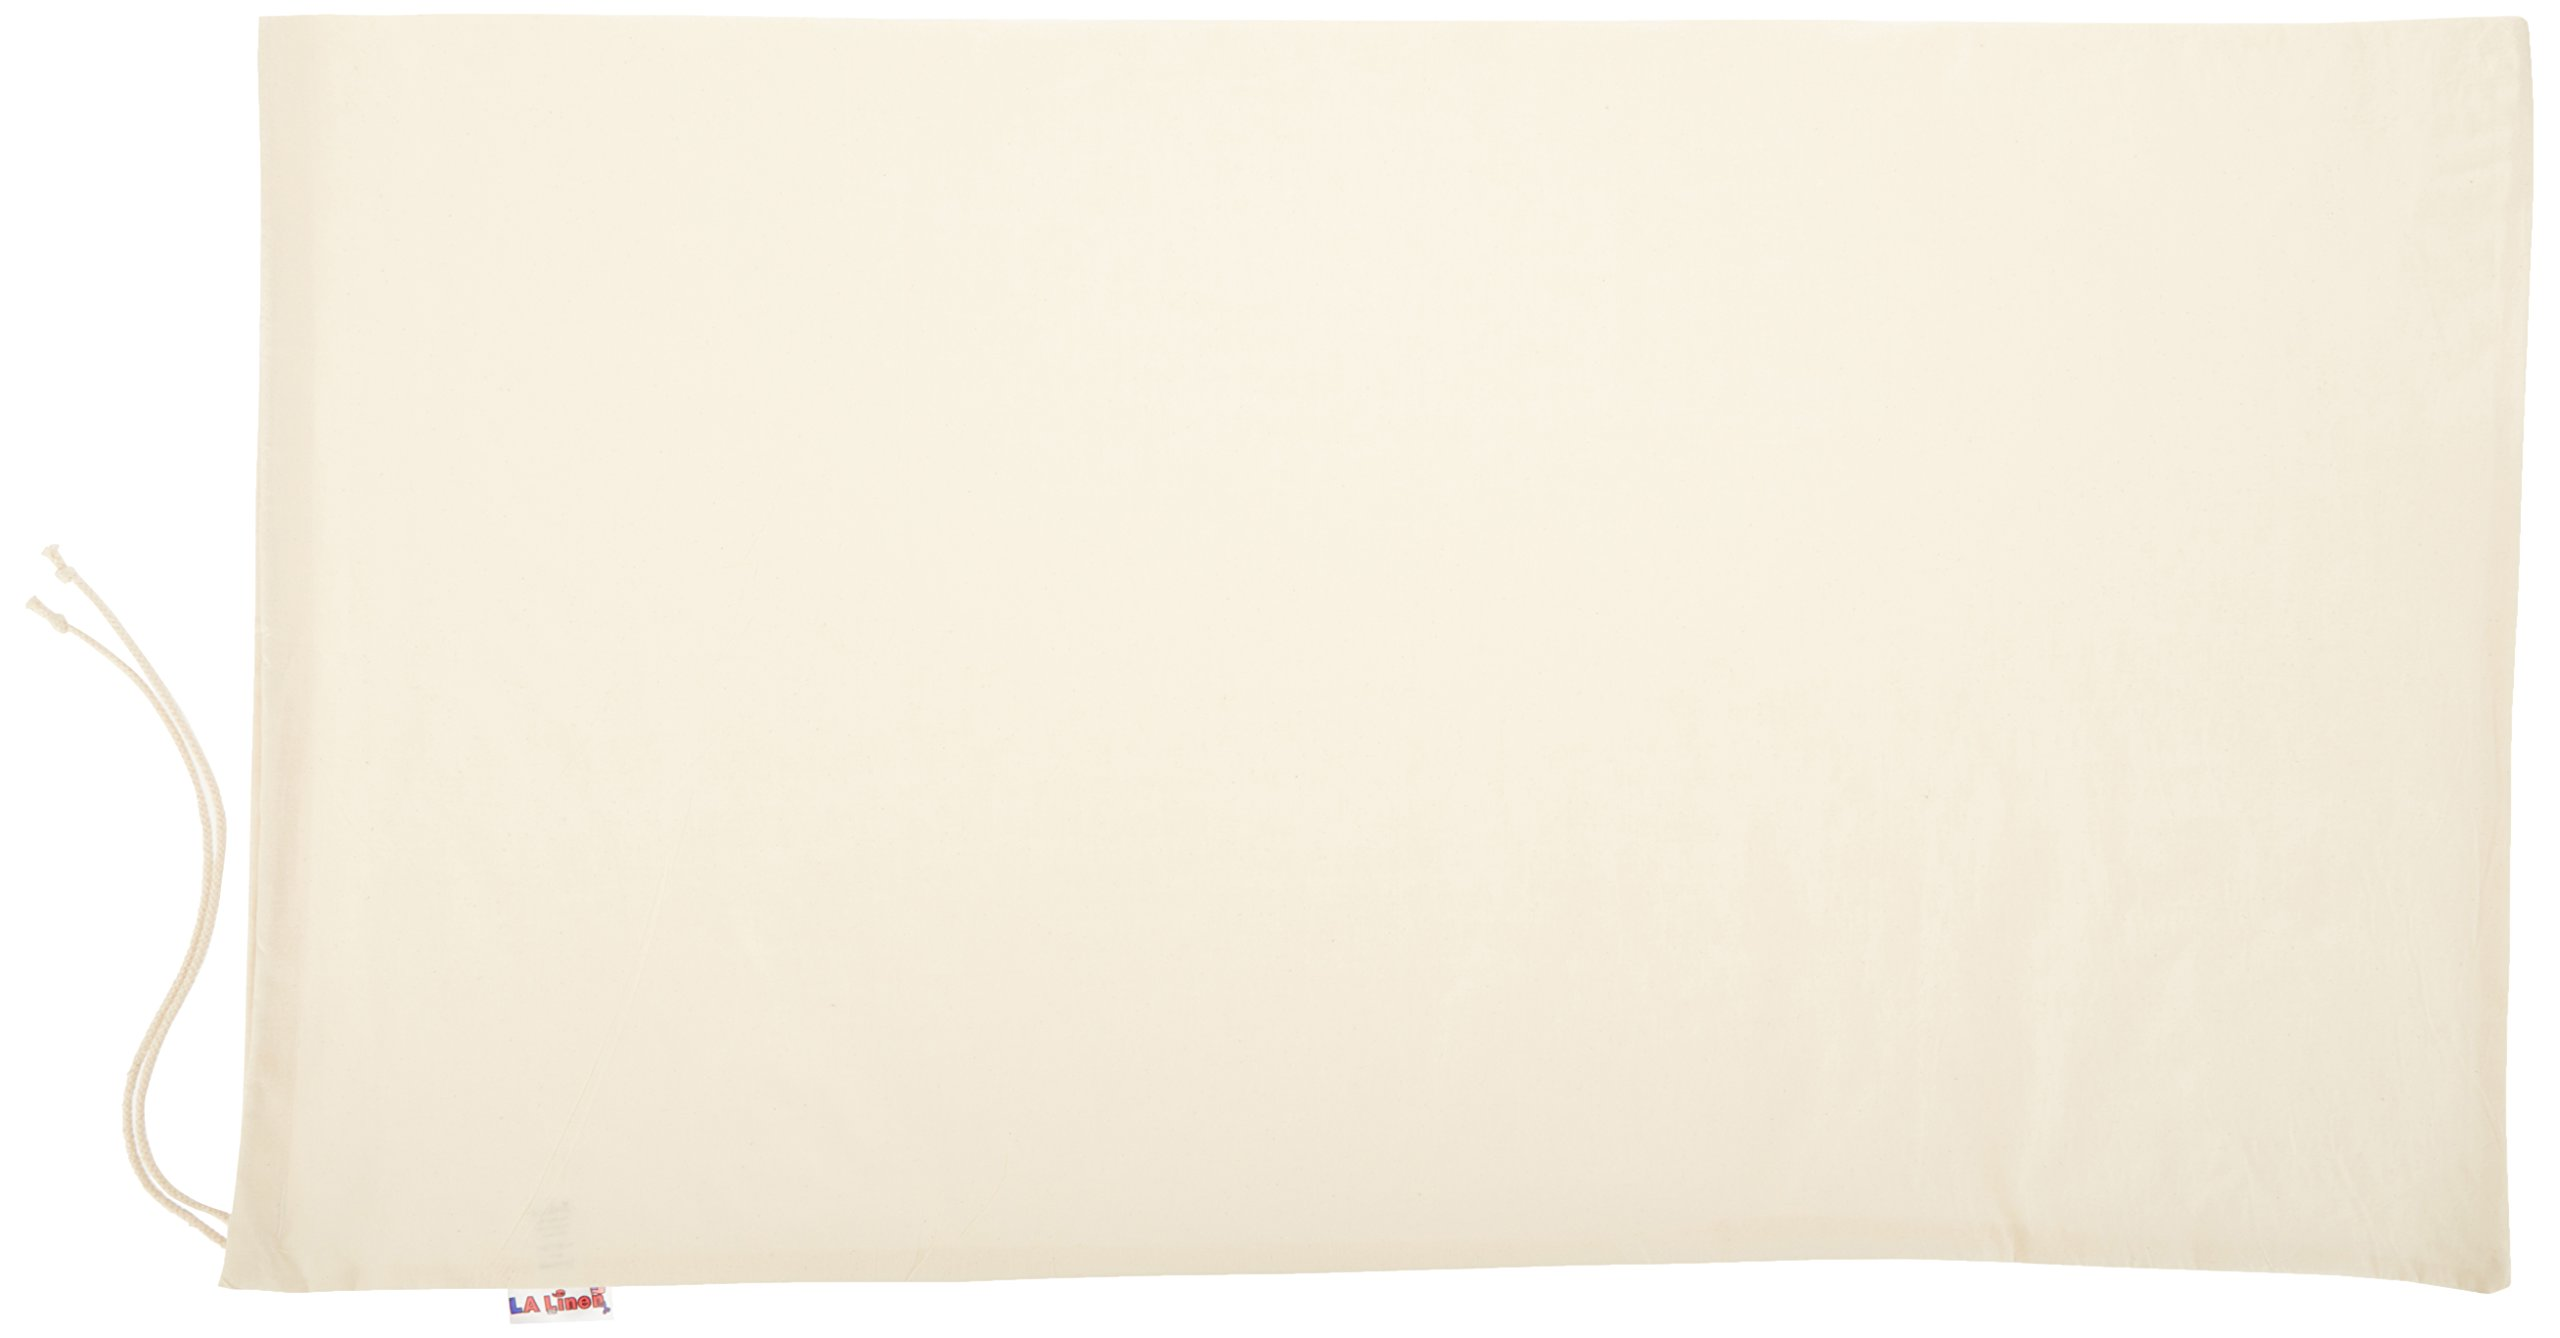 LA Linen 100% Cotton Extra Large Canvas Draw String Laundry Bag 28 by 40-Inch High. Pack 10